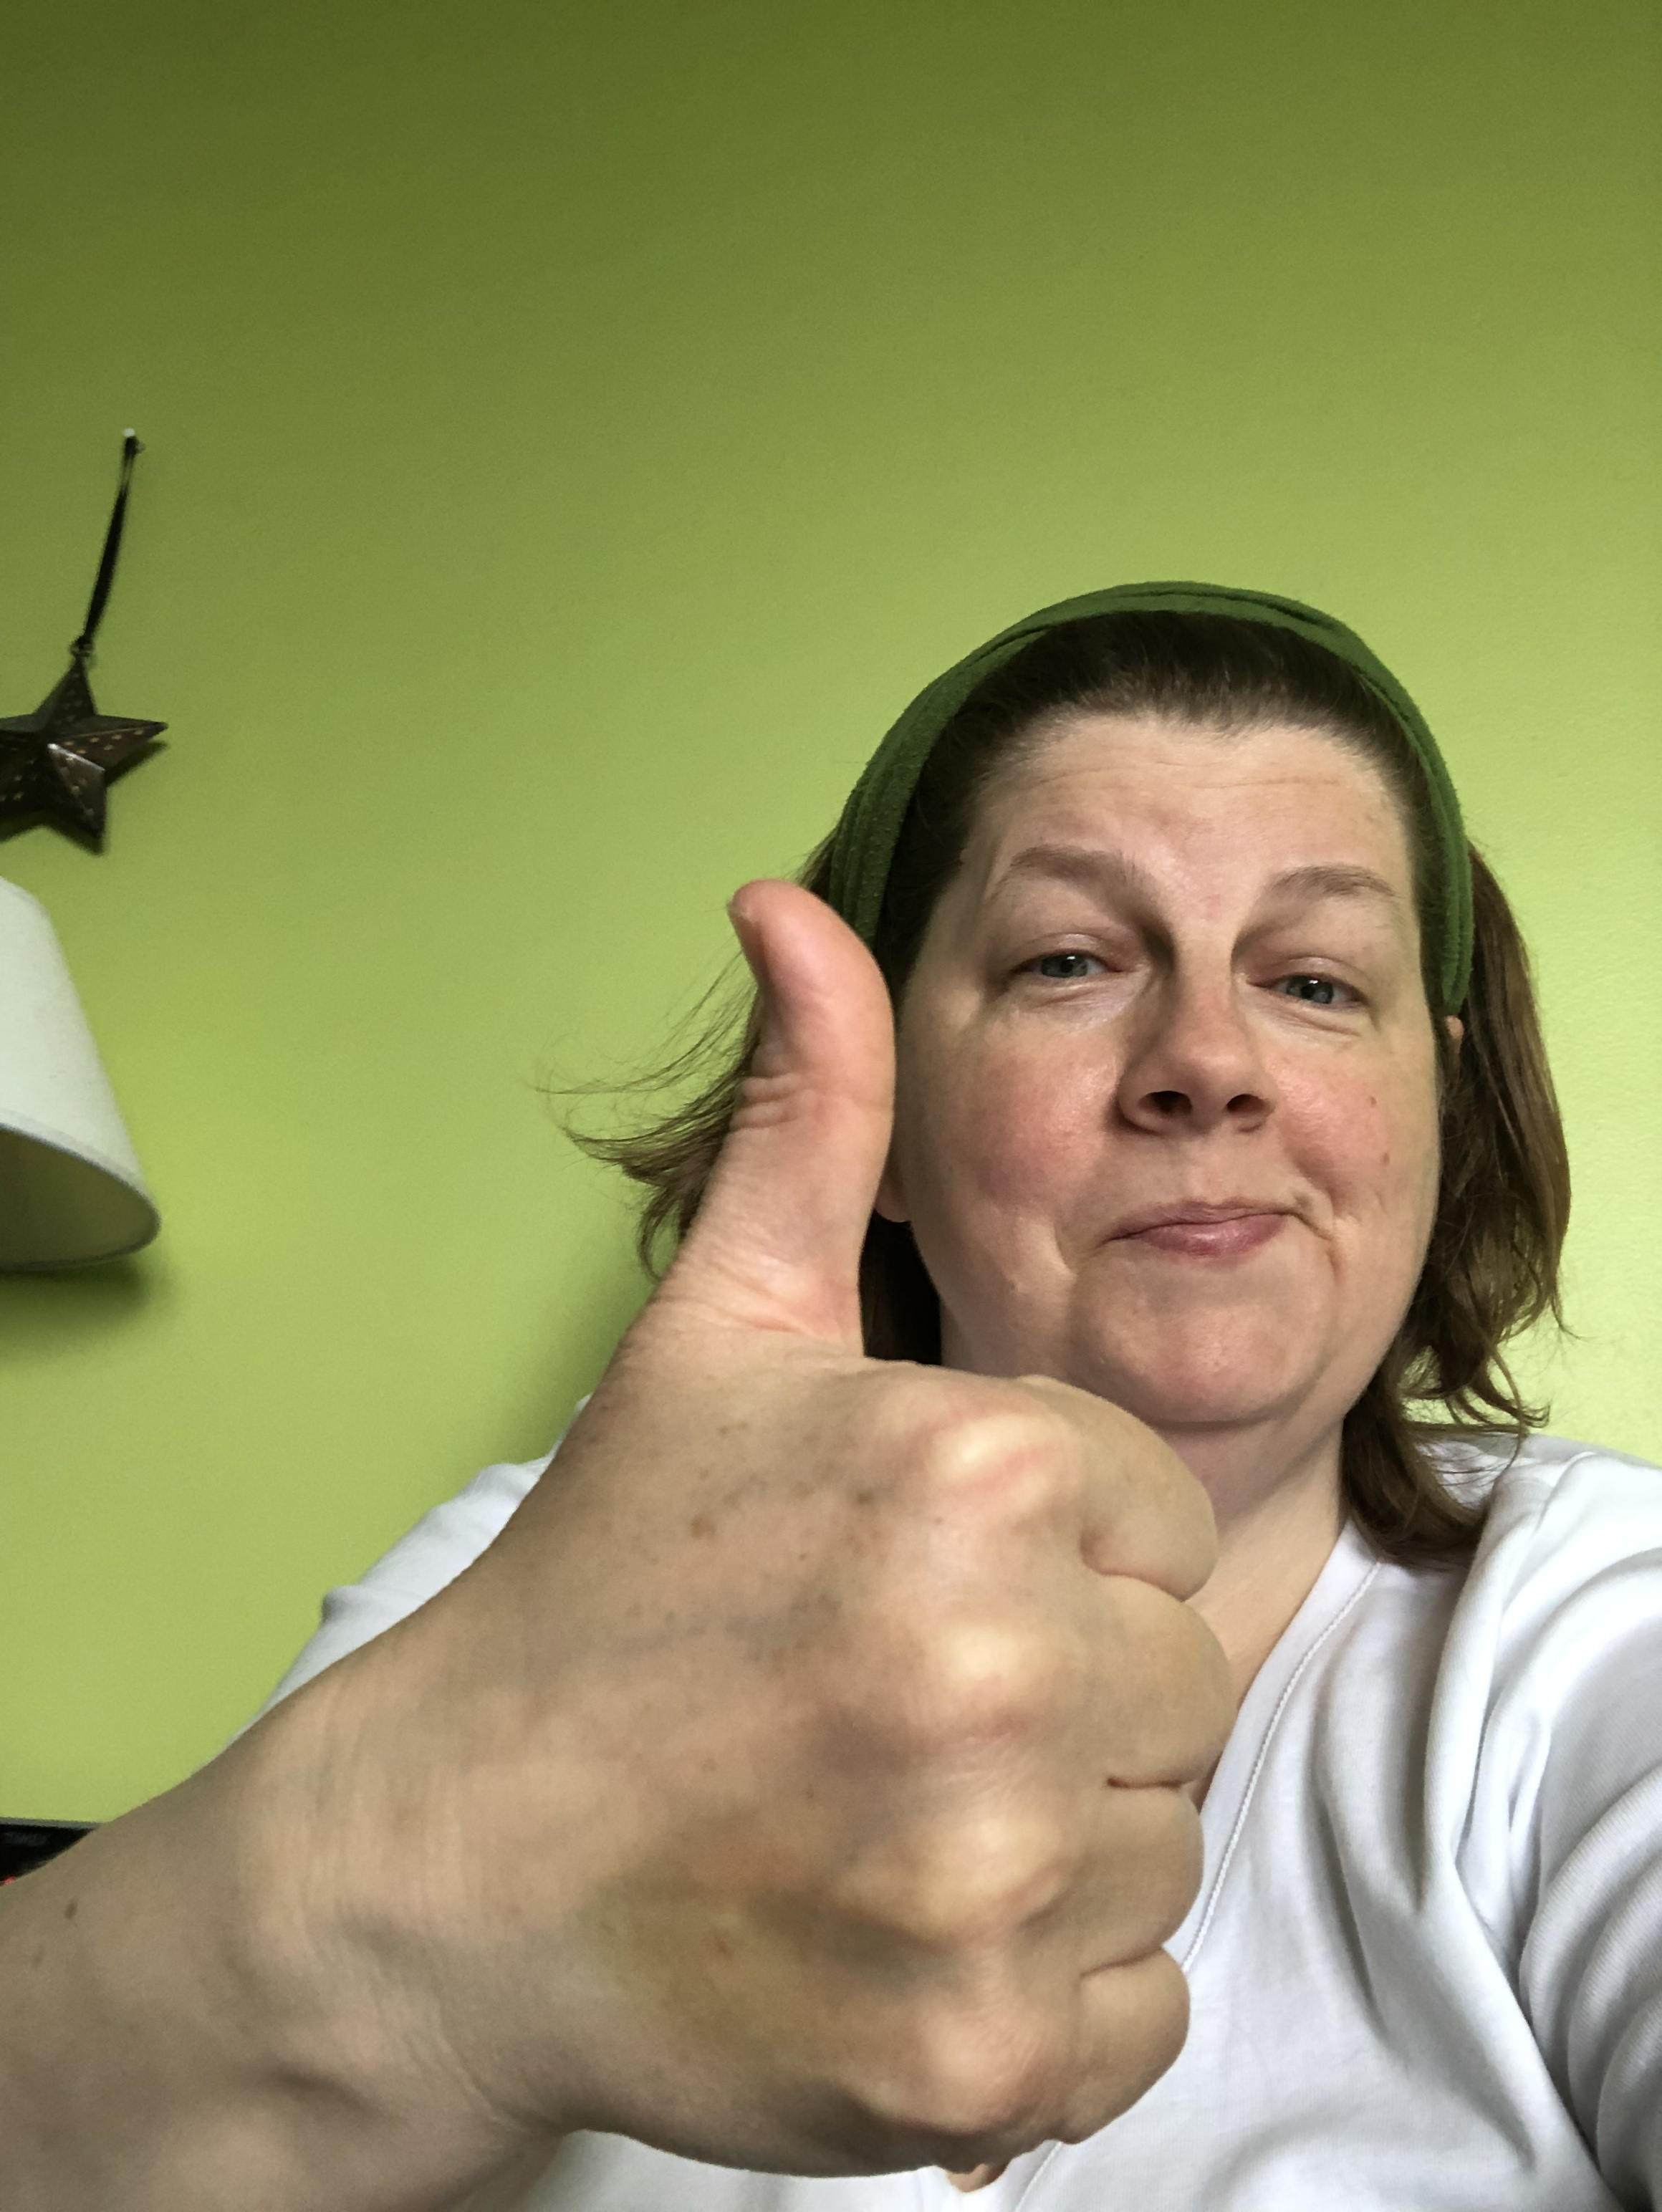 A white woman wearing a white v-necked shirt is in front of a light green wall. She is smirking and she is giving a thumbs up with her right hand.